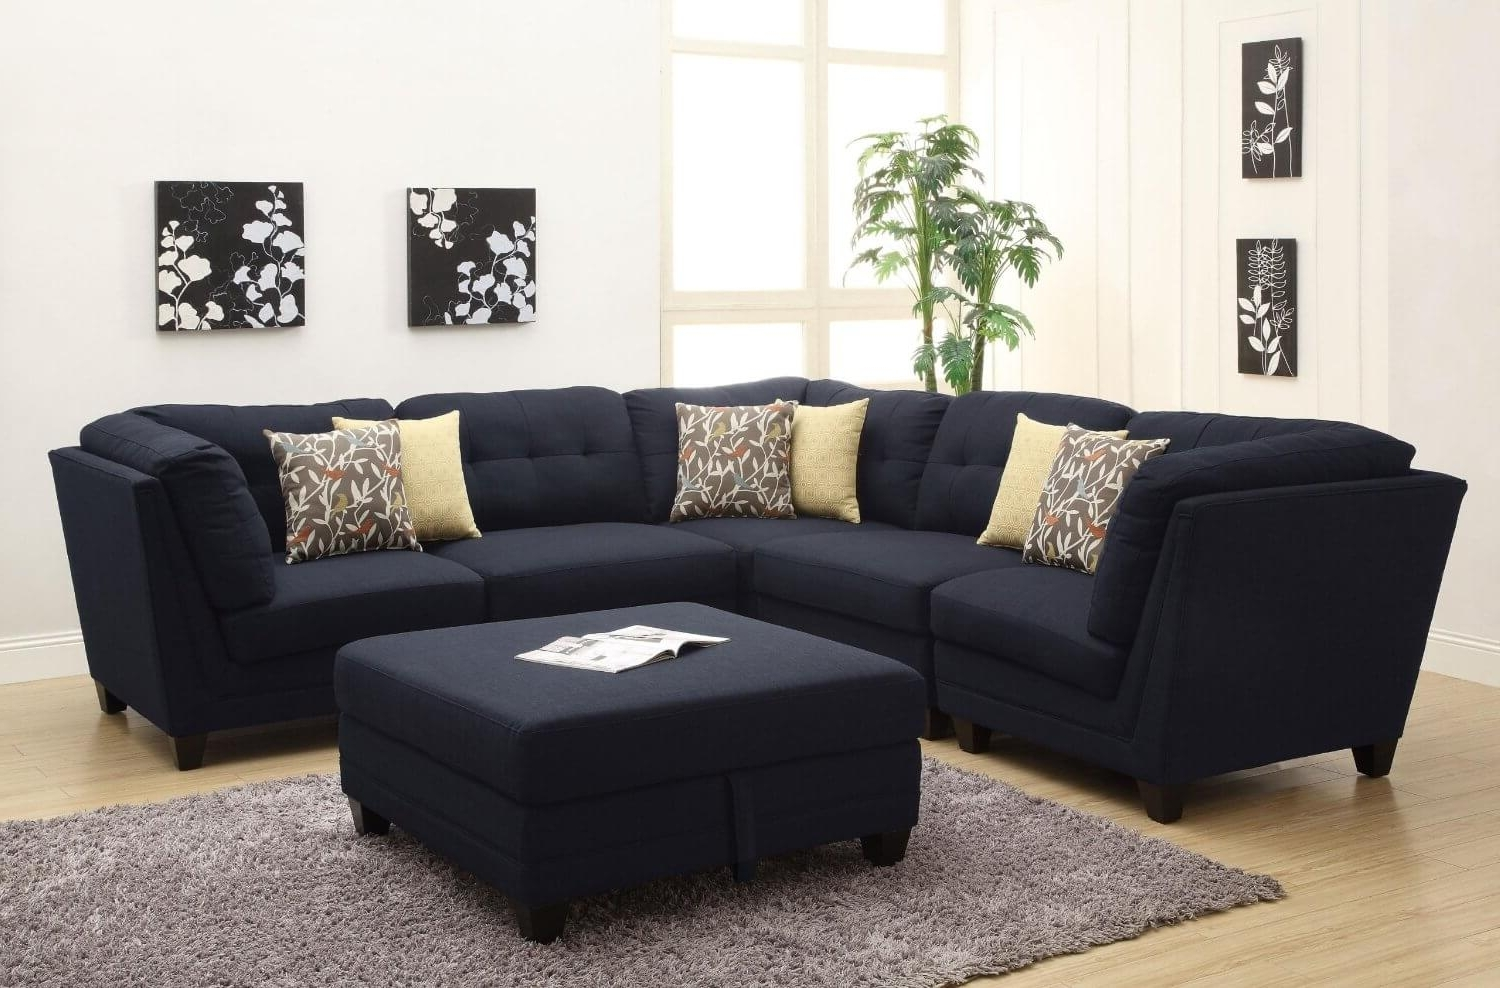 Sectional Sofas Under 900 Intended For Popular 100 Awesome Sectional Sofas Under $1,000 (2018) (View 10 of 15)